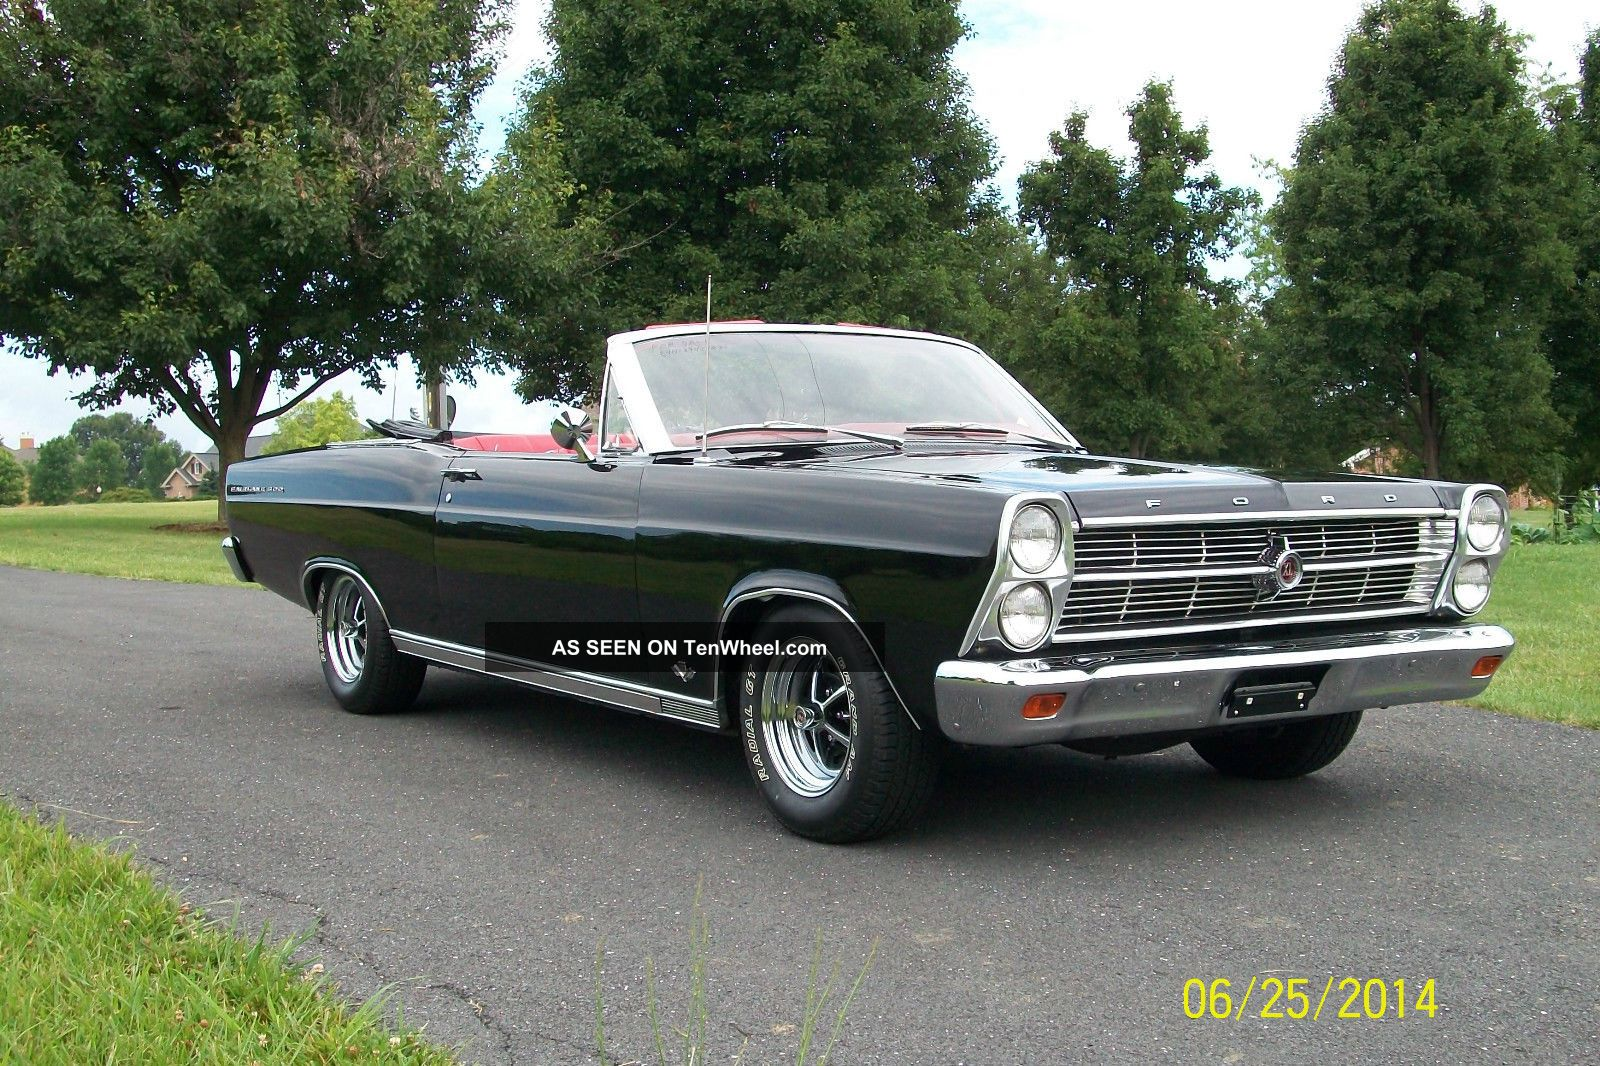 1966 Ford Fairlane 500 Convertible on 2014 mustang all wheel drive